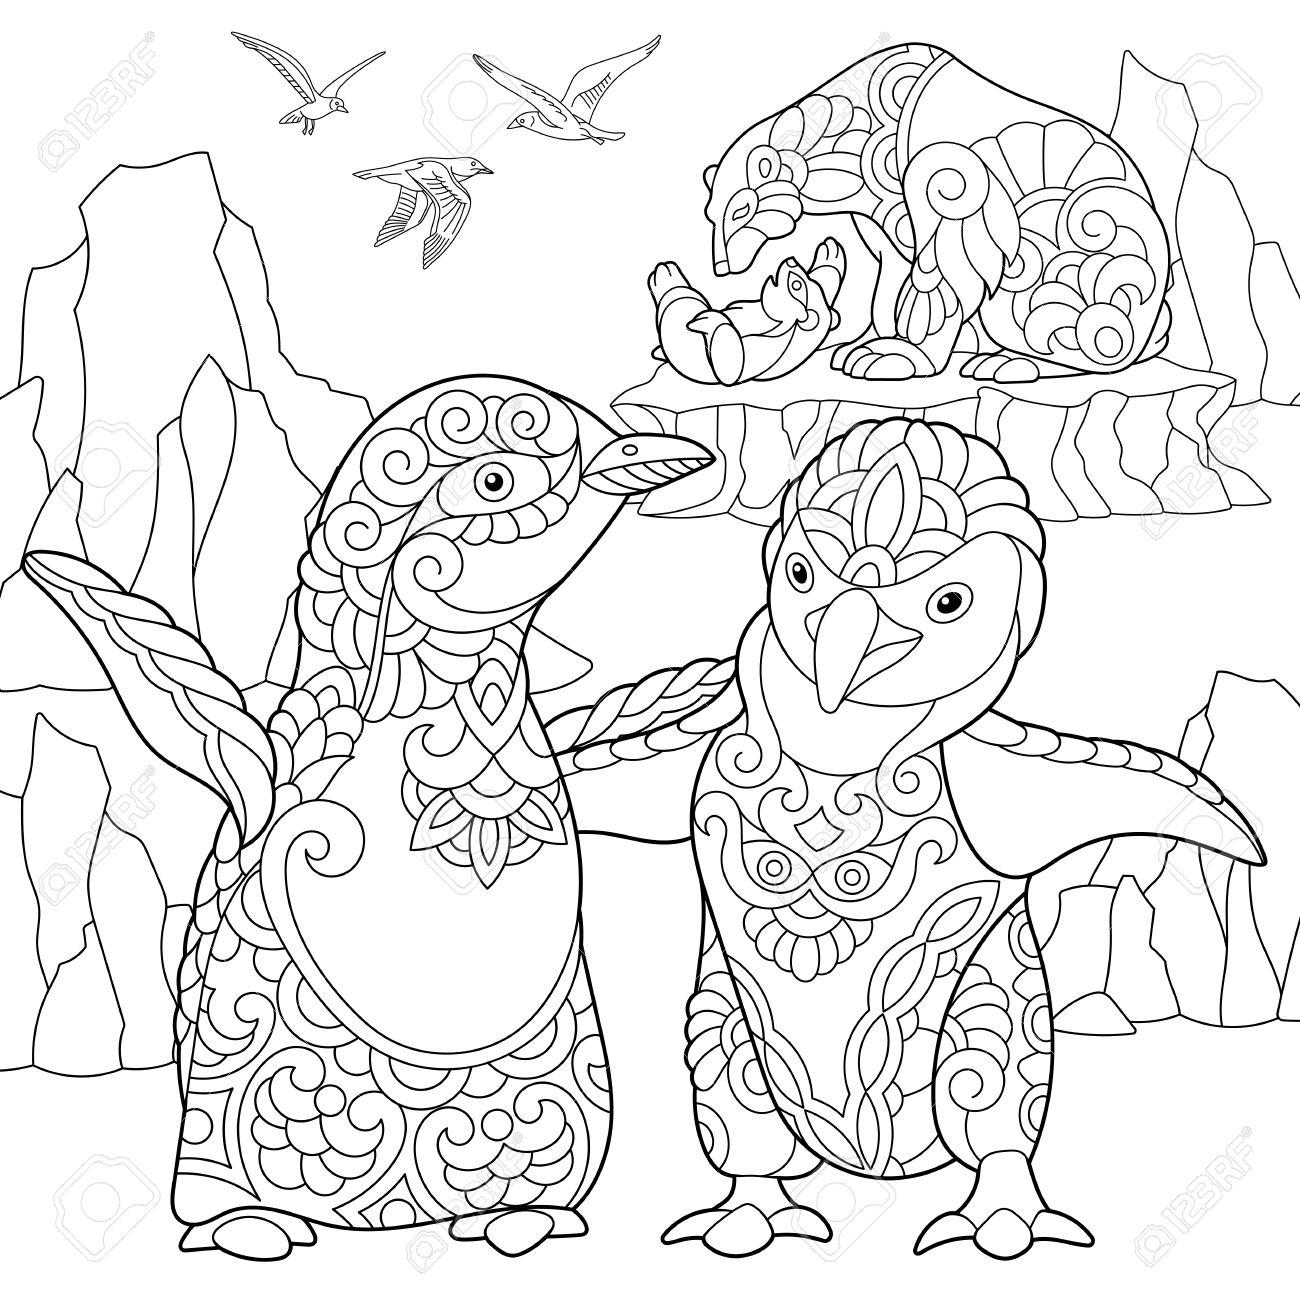 1300x1300 Coloring Page Of Emperor Penguins, Polar Bears And Seagulls